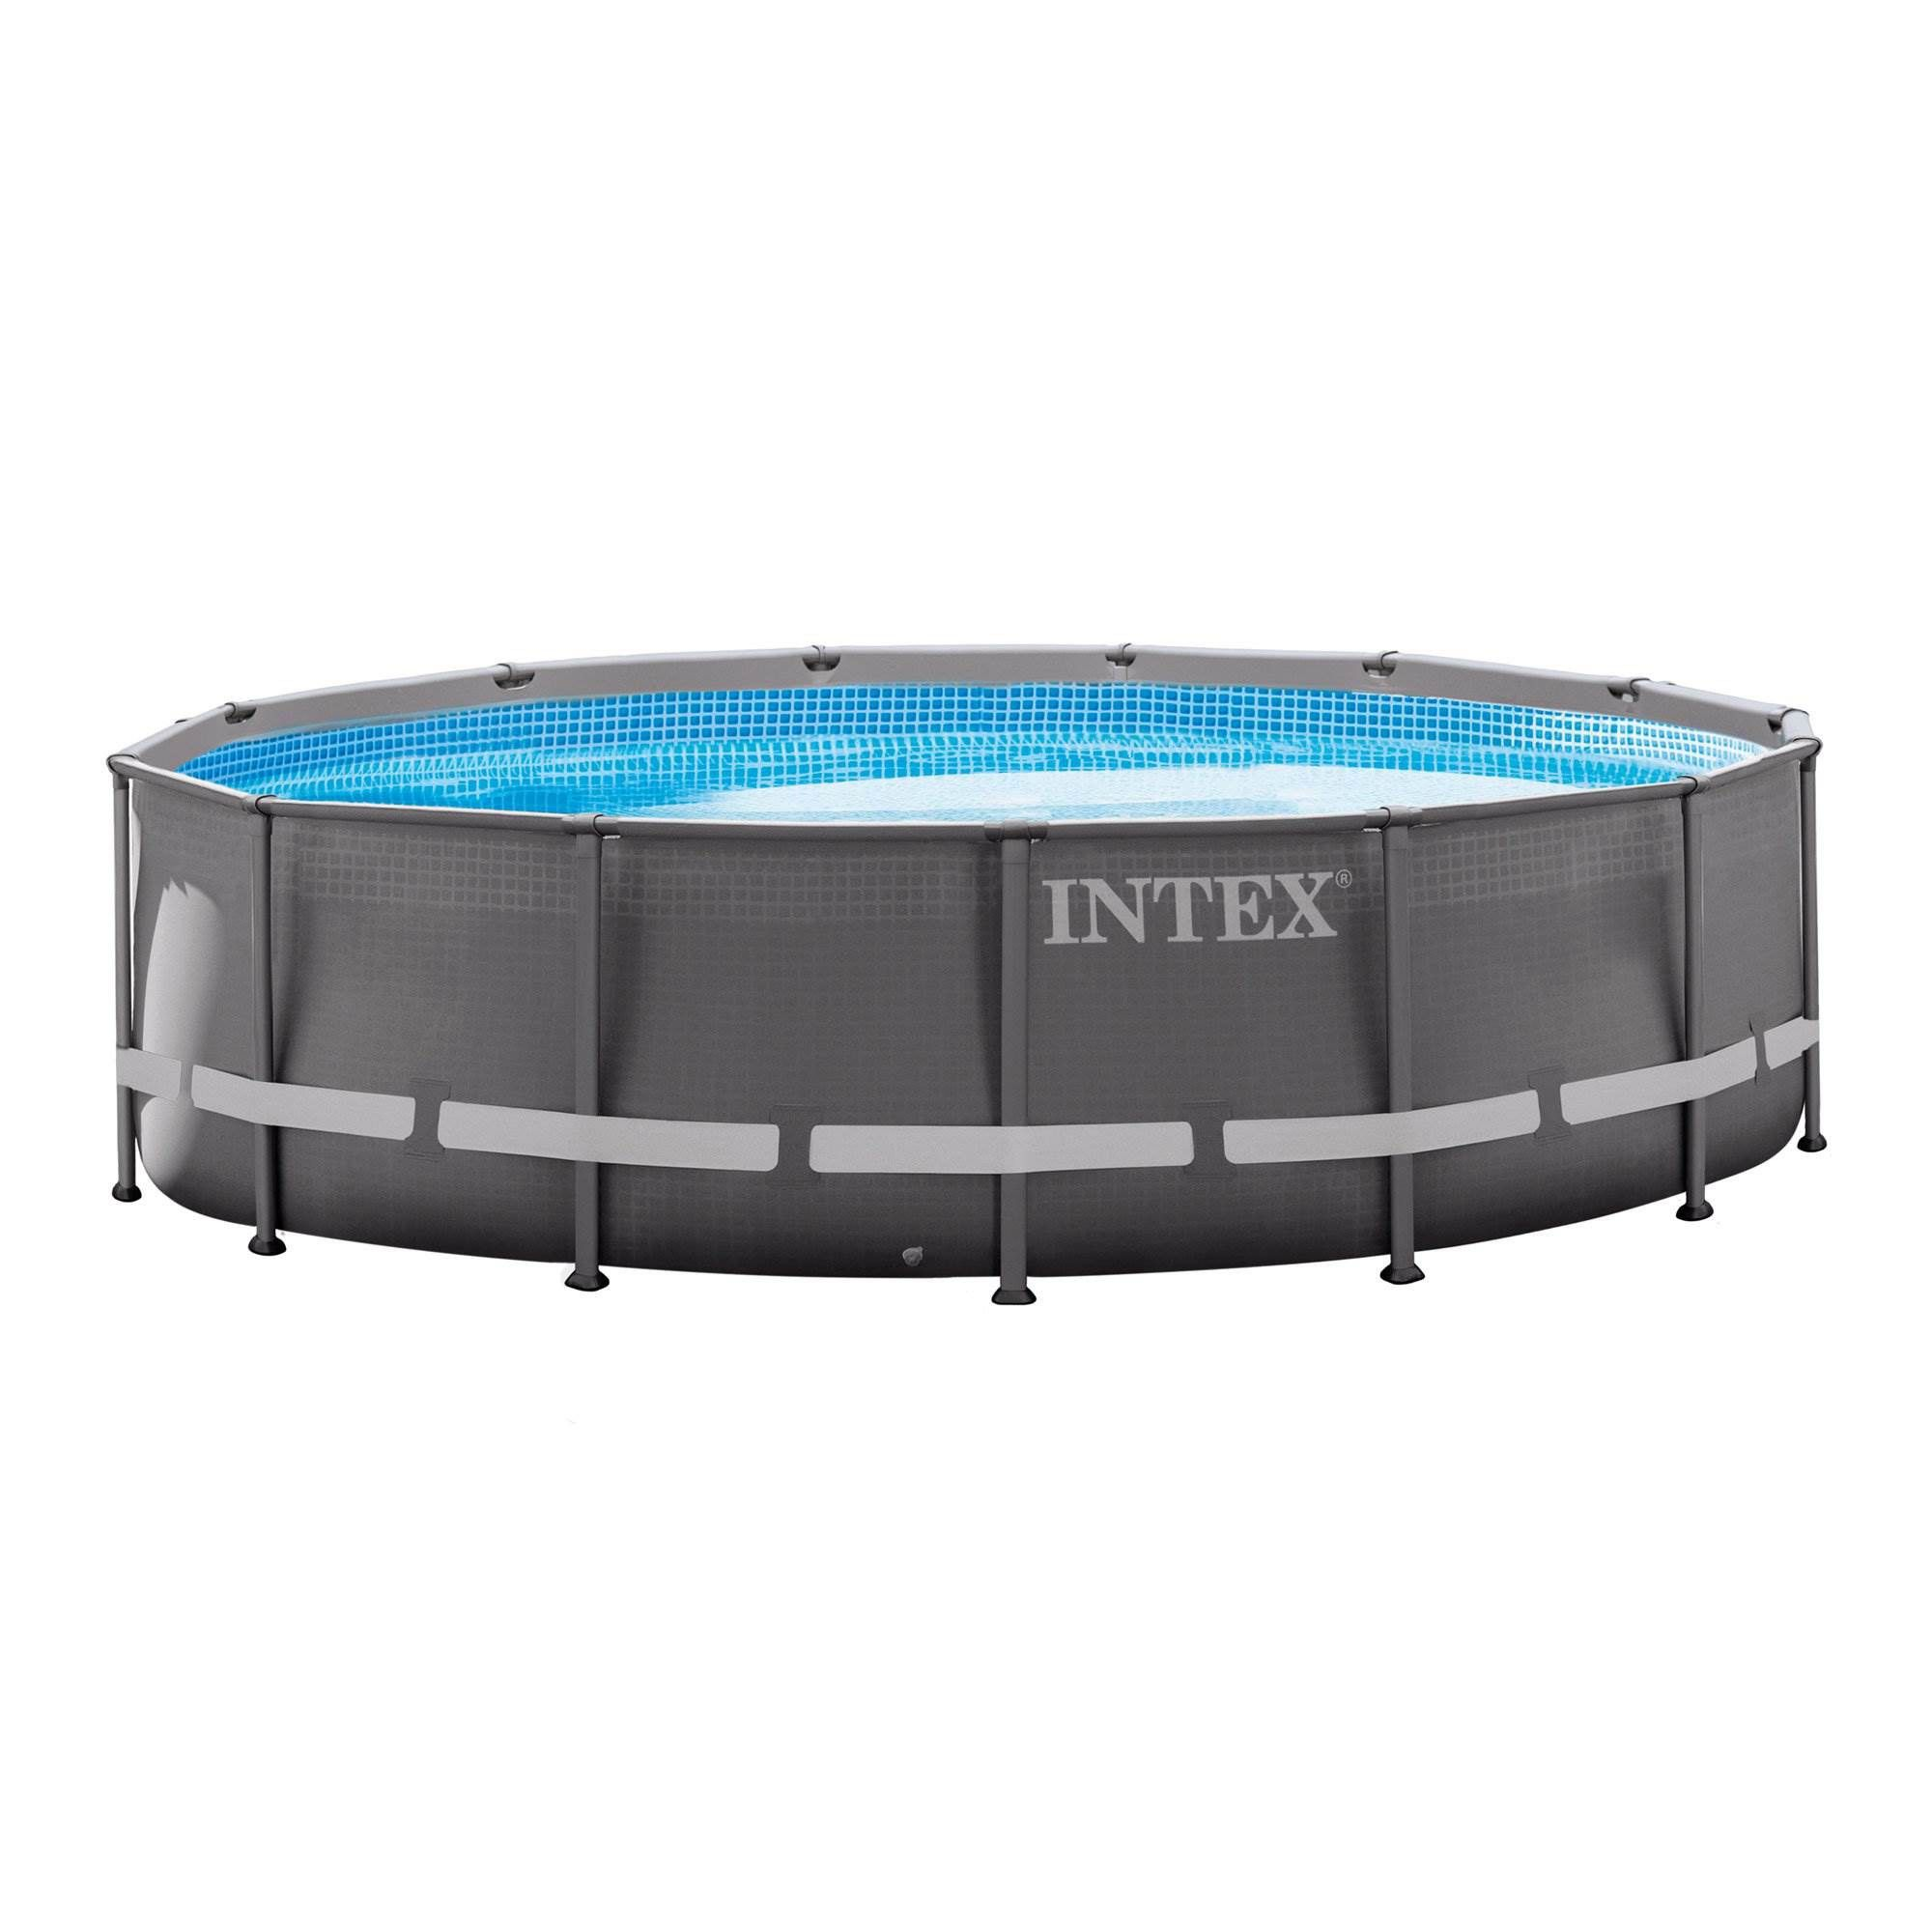 Intex 14ft x 42in Ultra Frame Above Ground Swimming Pool Set with Ladder & Pump